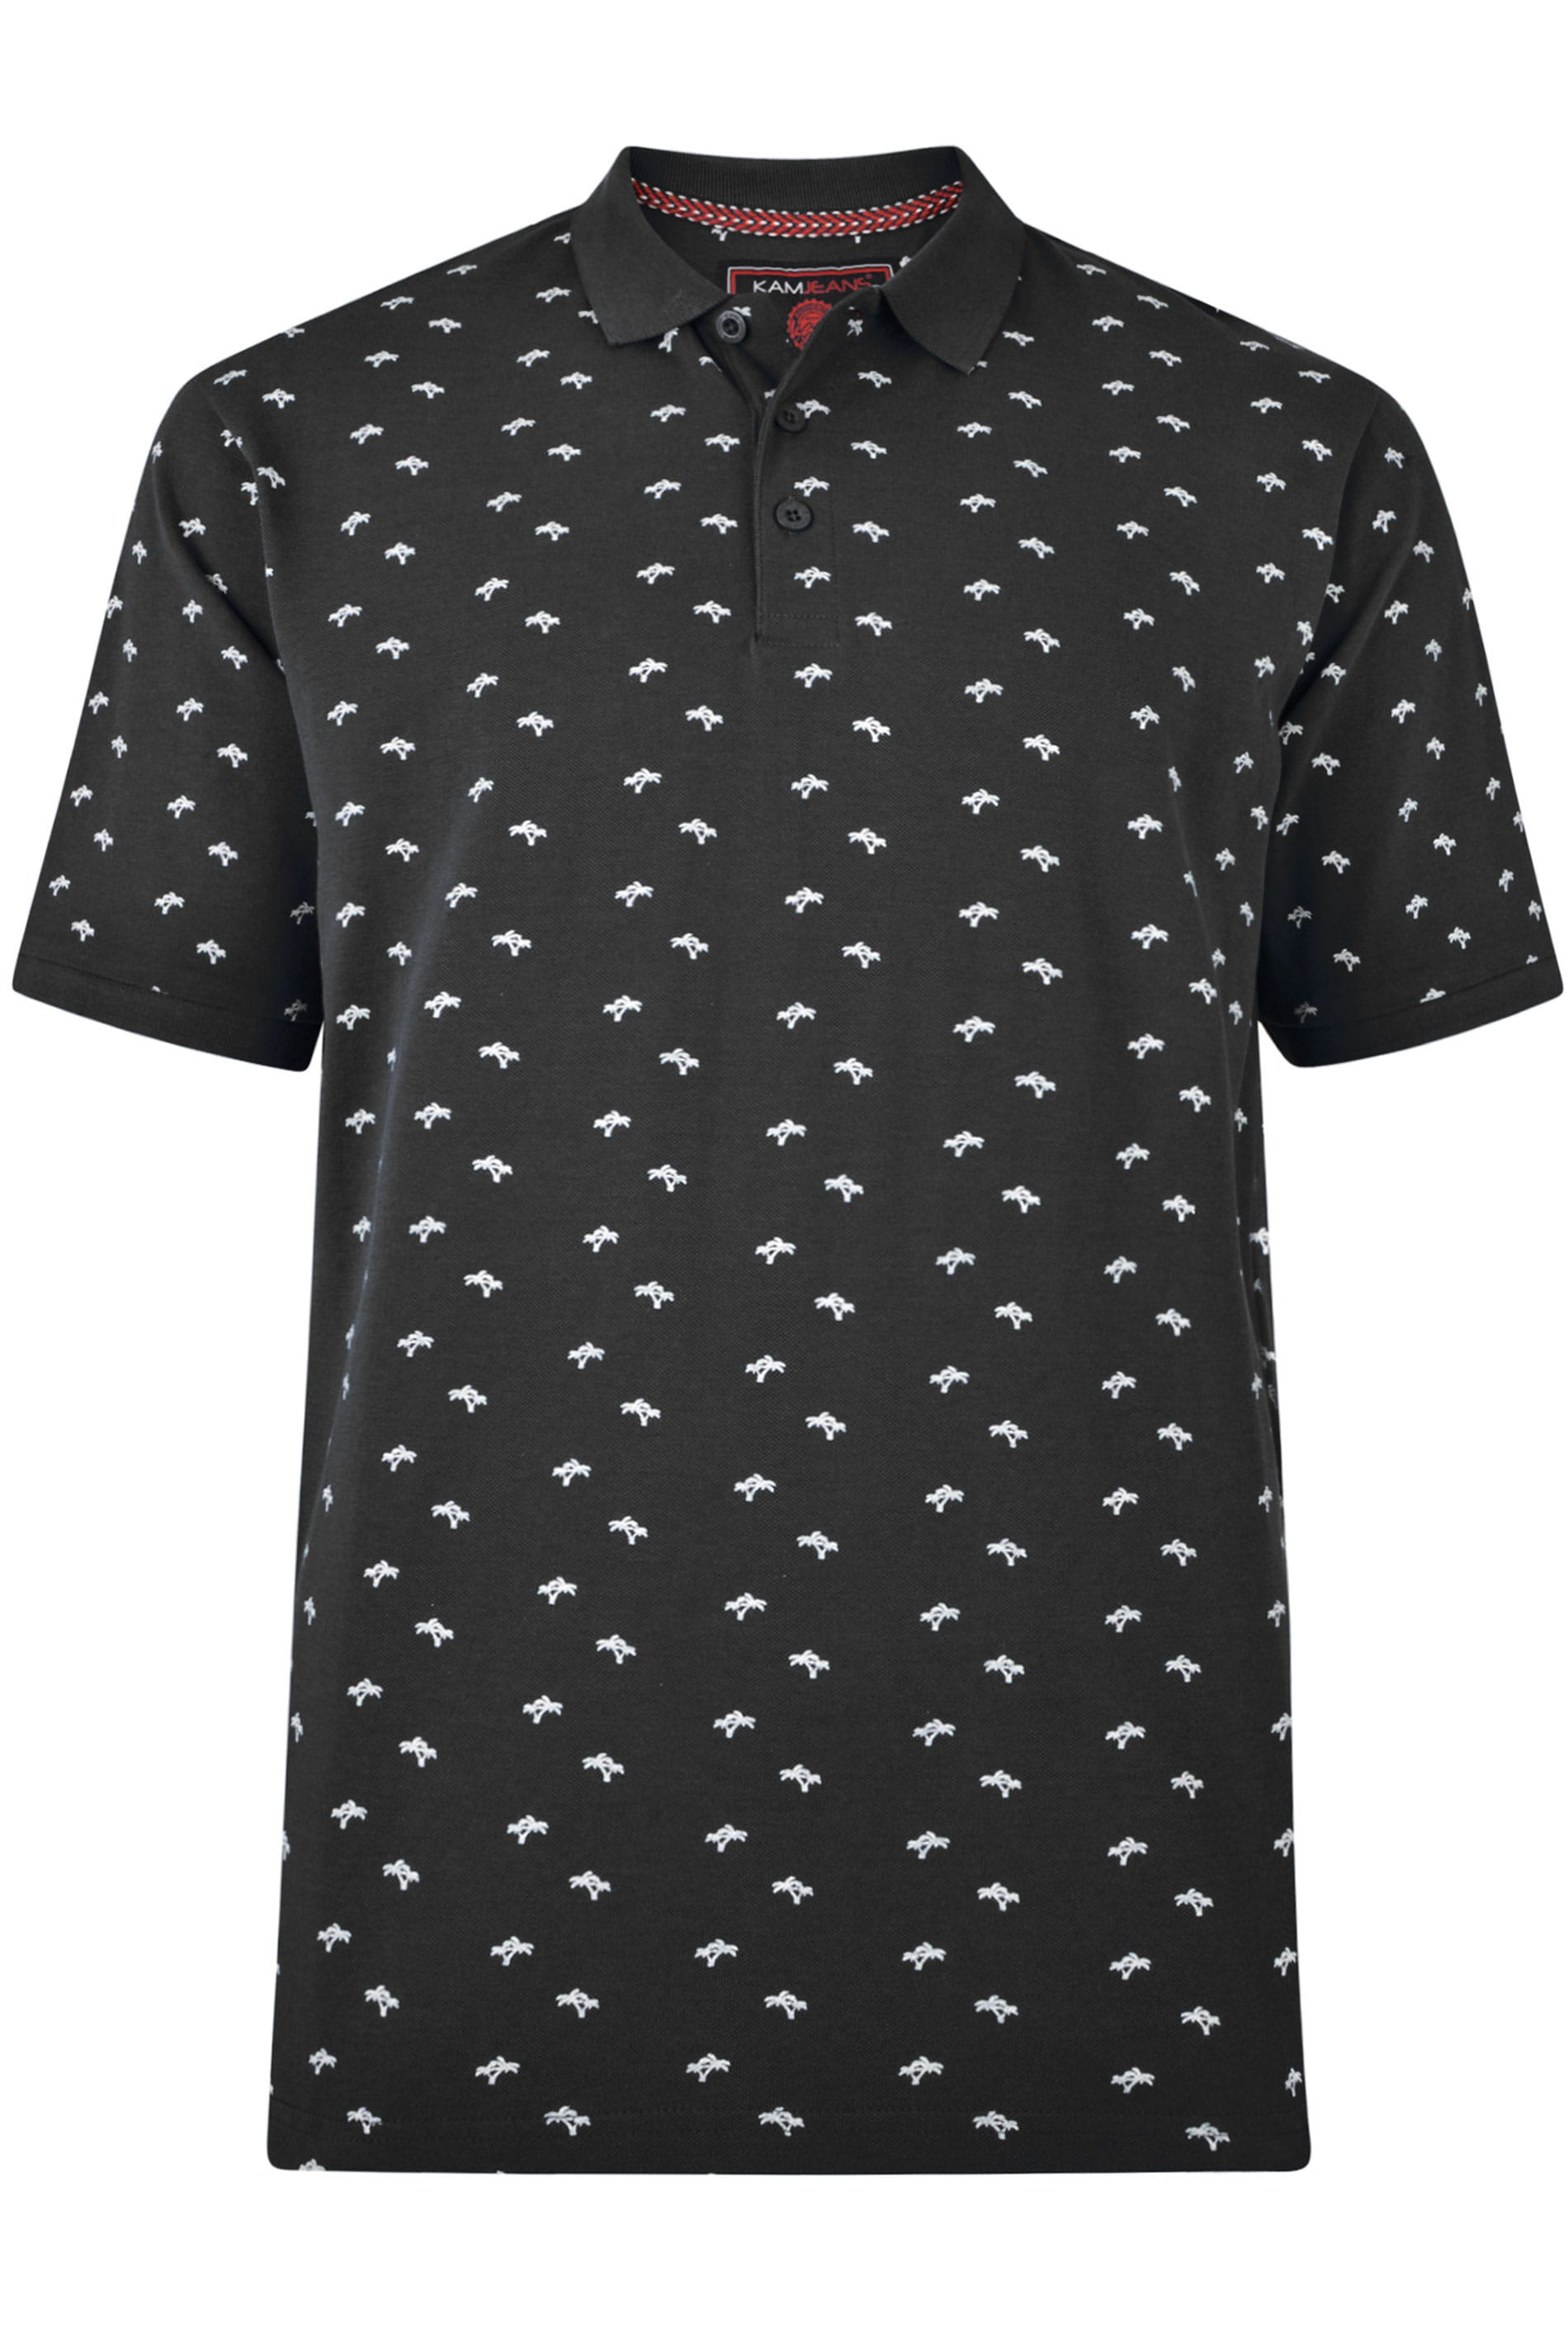 KAM Black Palm Print Polo Shirt